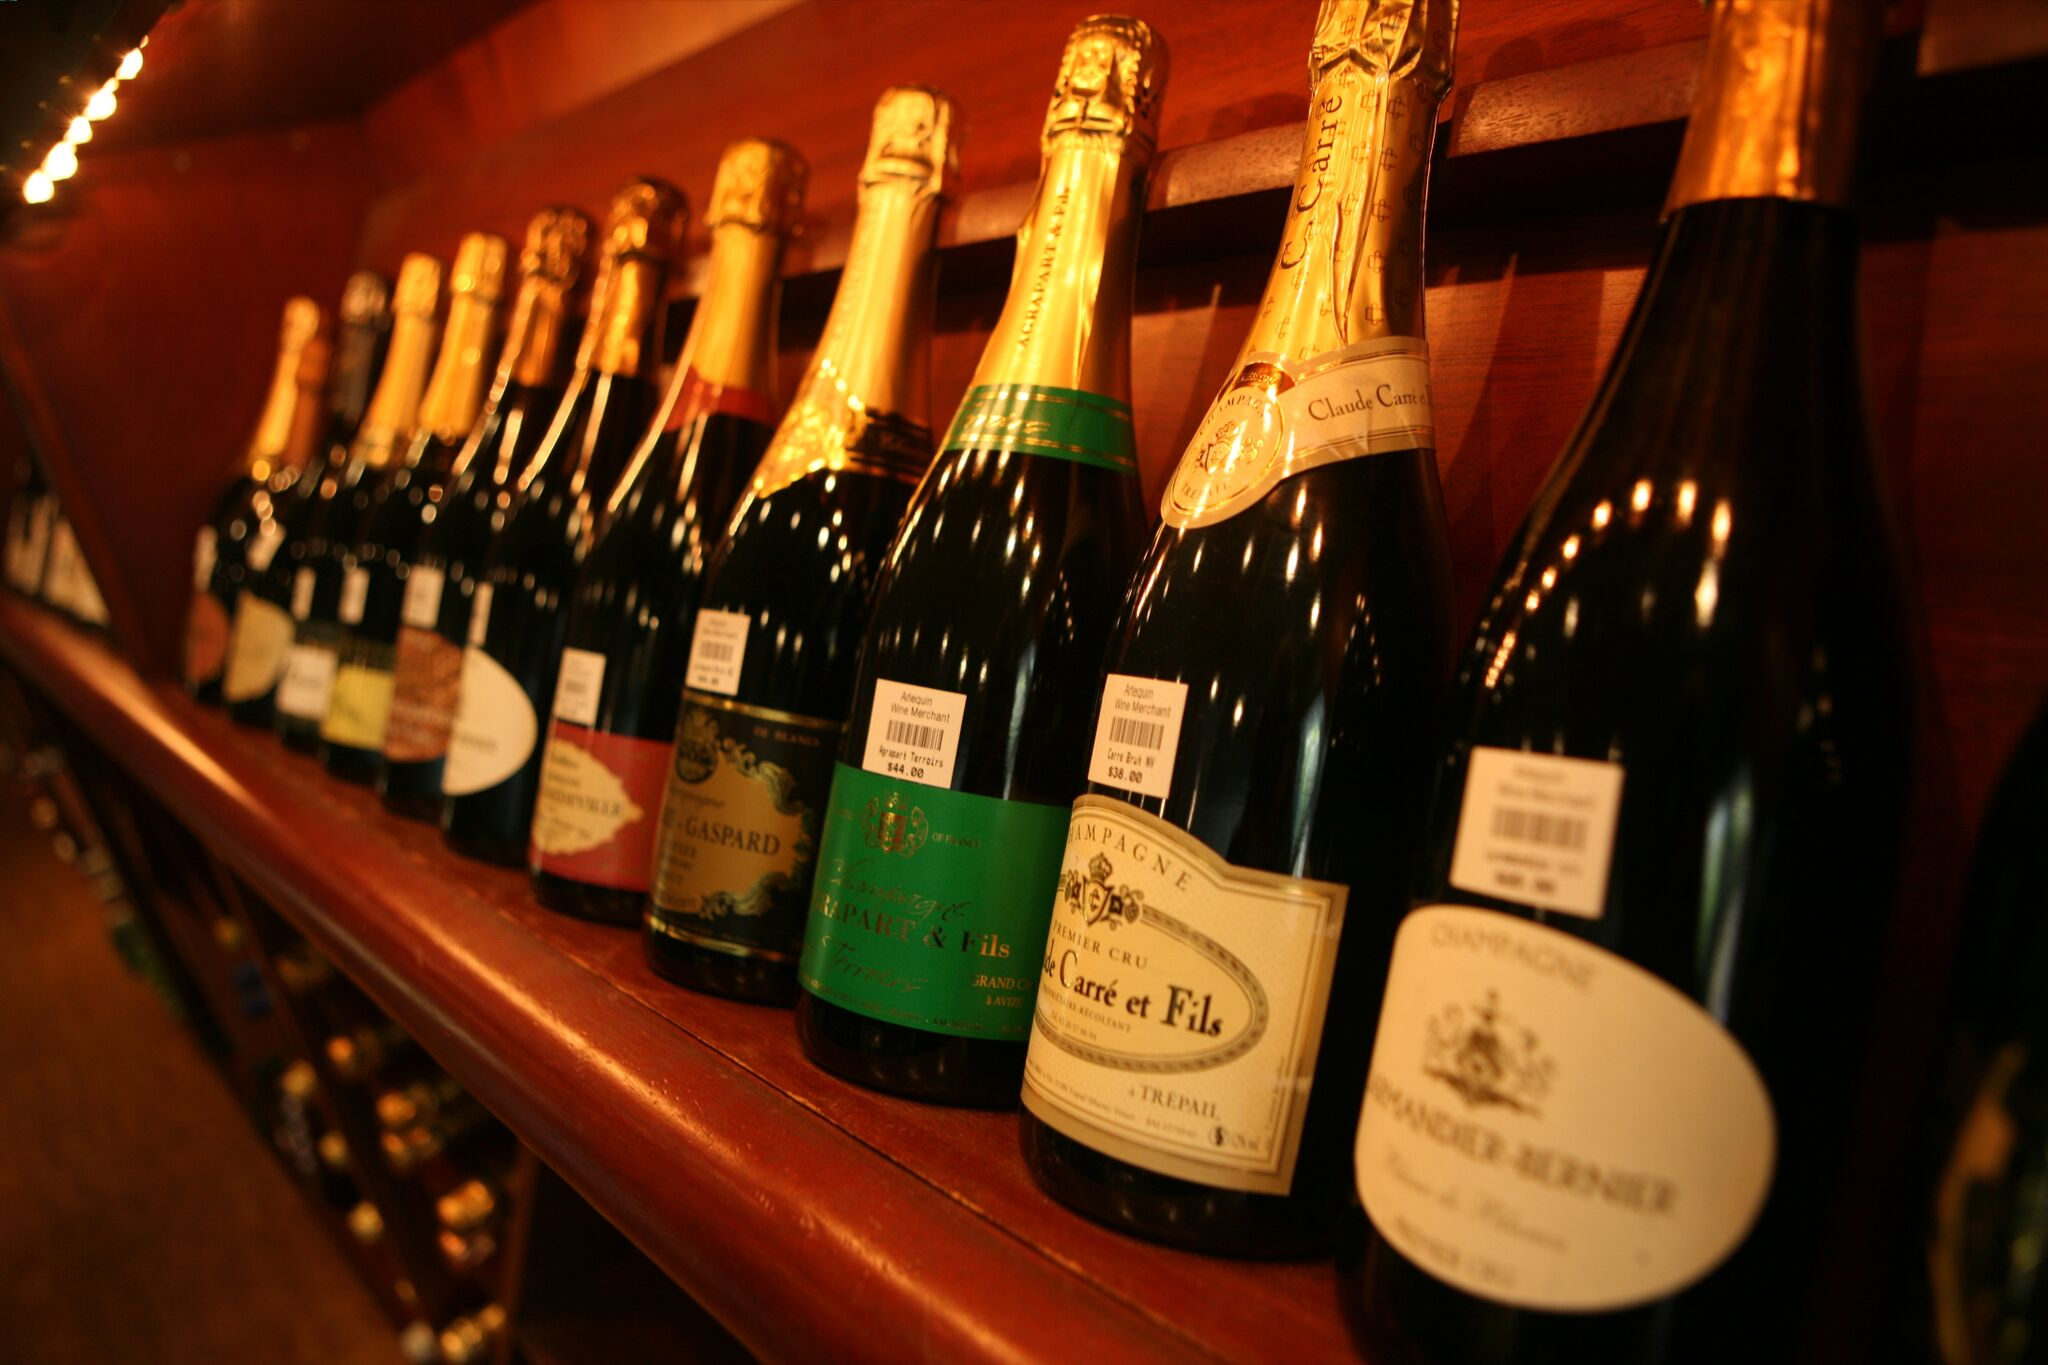 Arlequin's champagne selection